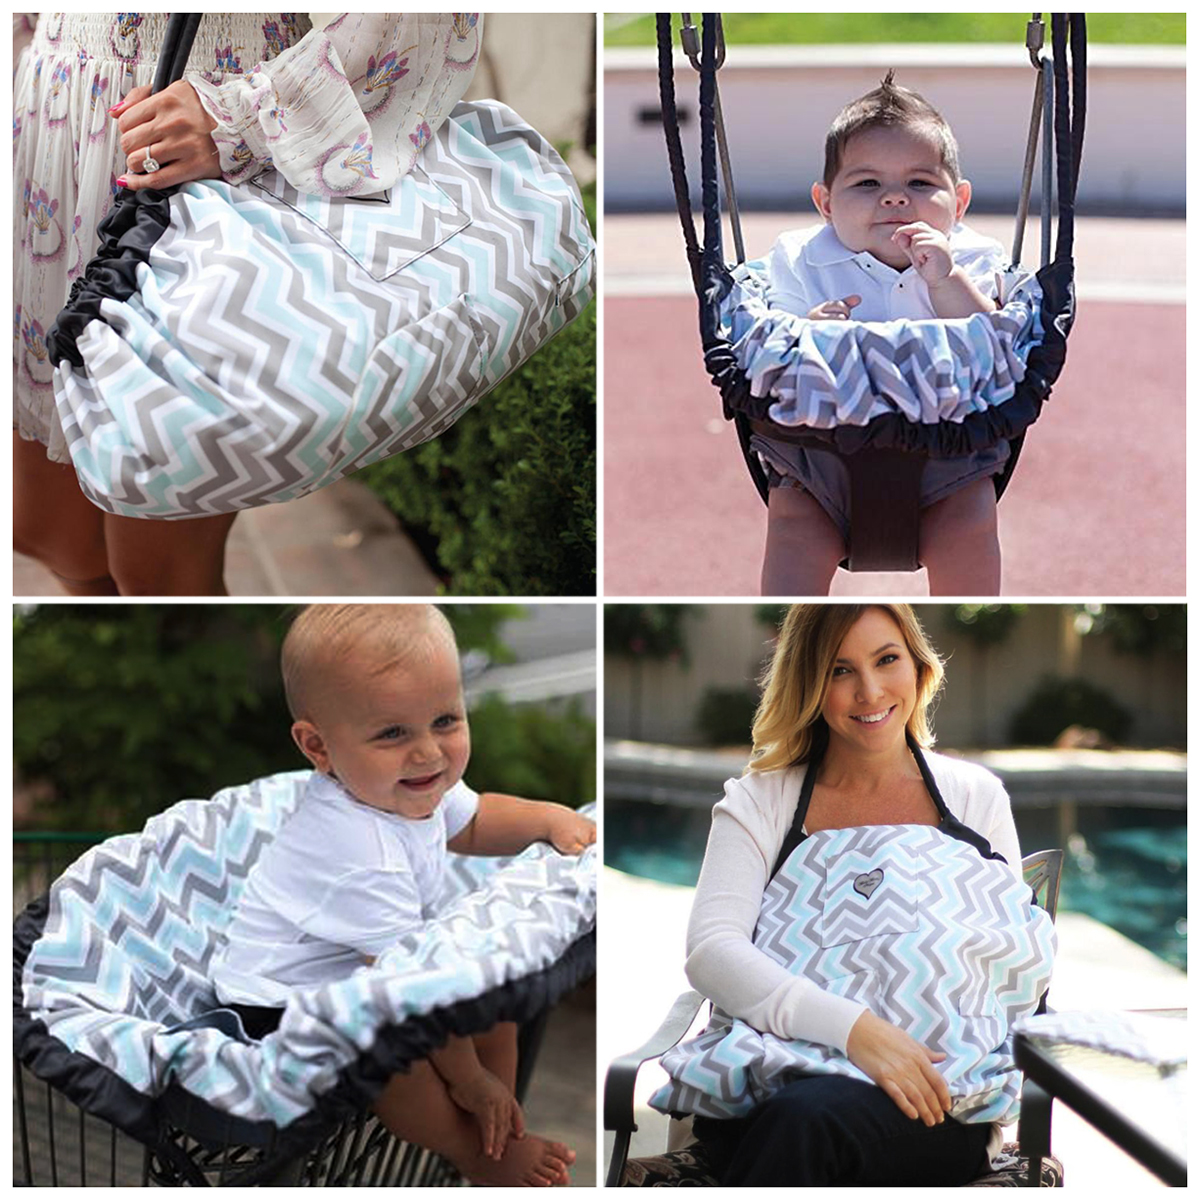 Maya & Max 6-In-1 Cover Tote Bag, Baby Mat, Breastfeeding Nursing Cover, Play Mat for, High Chair Swing and Car Seat Cover For Infants